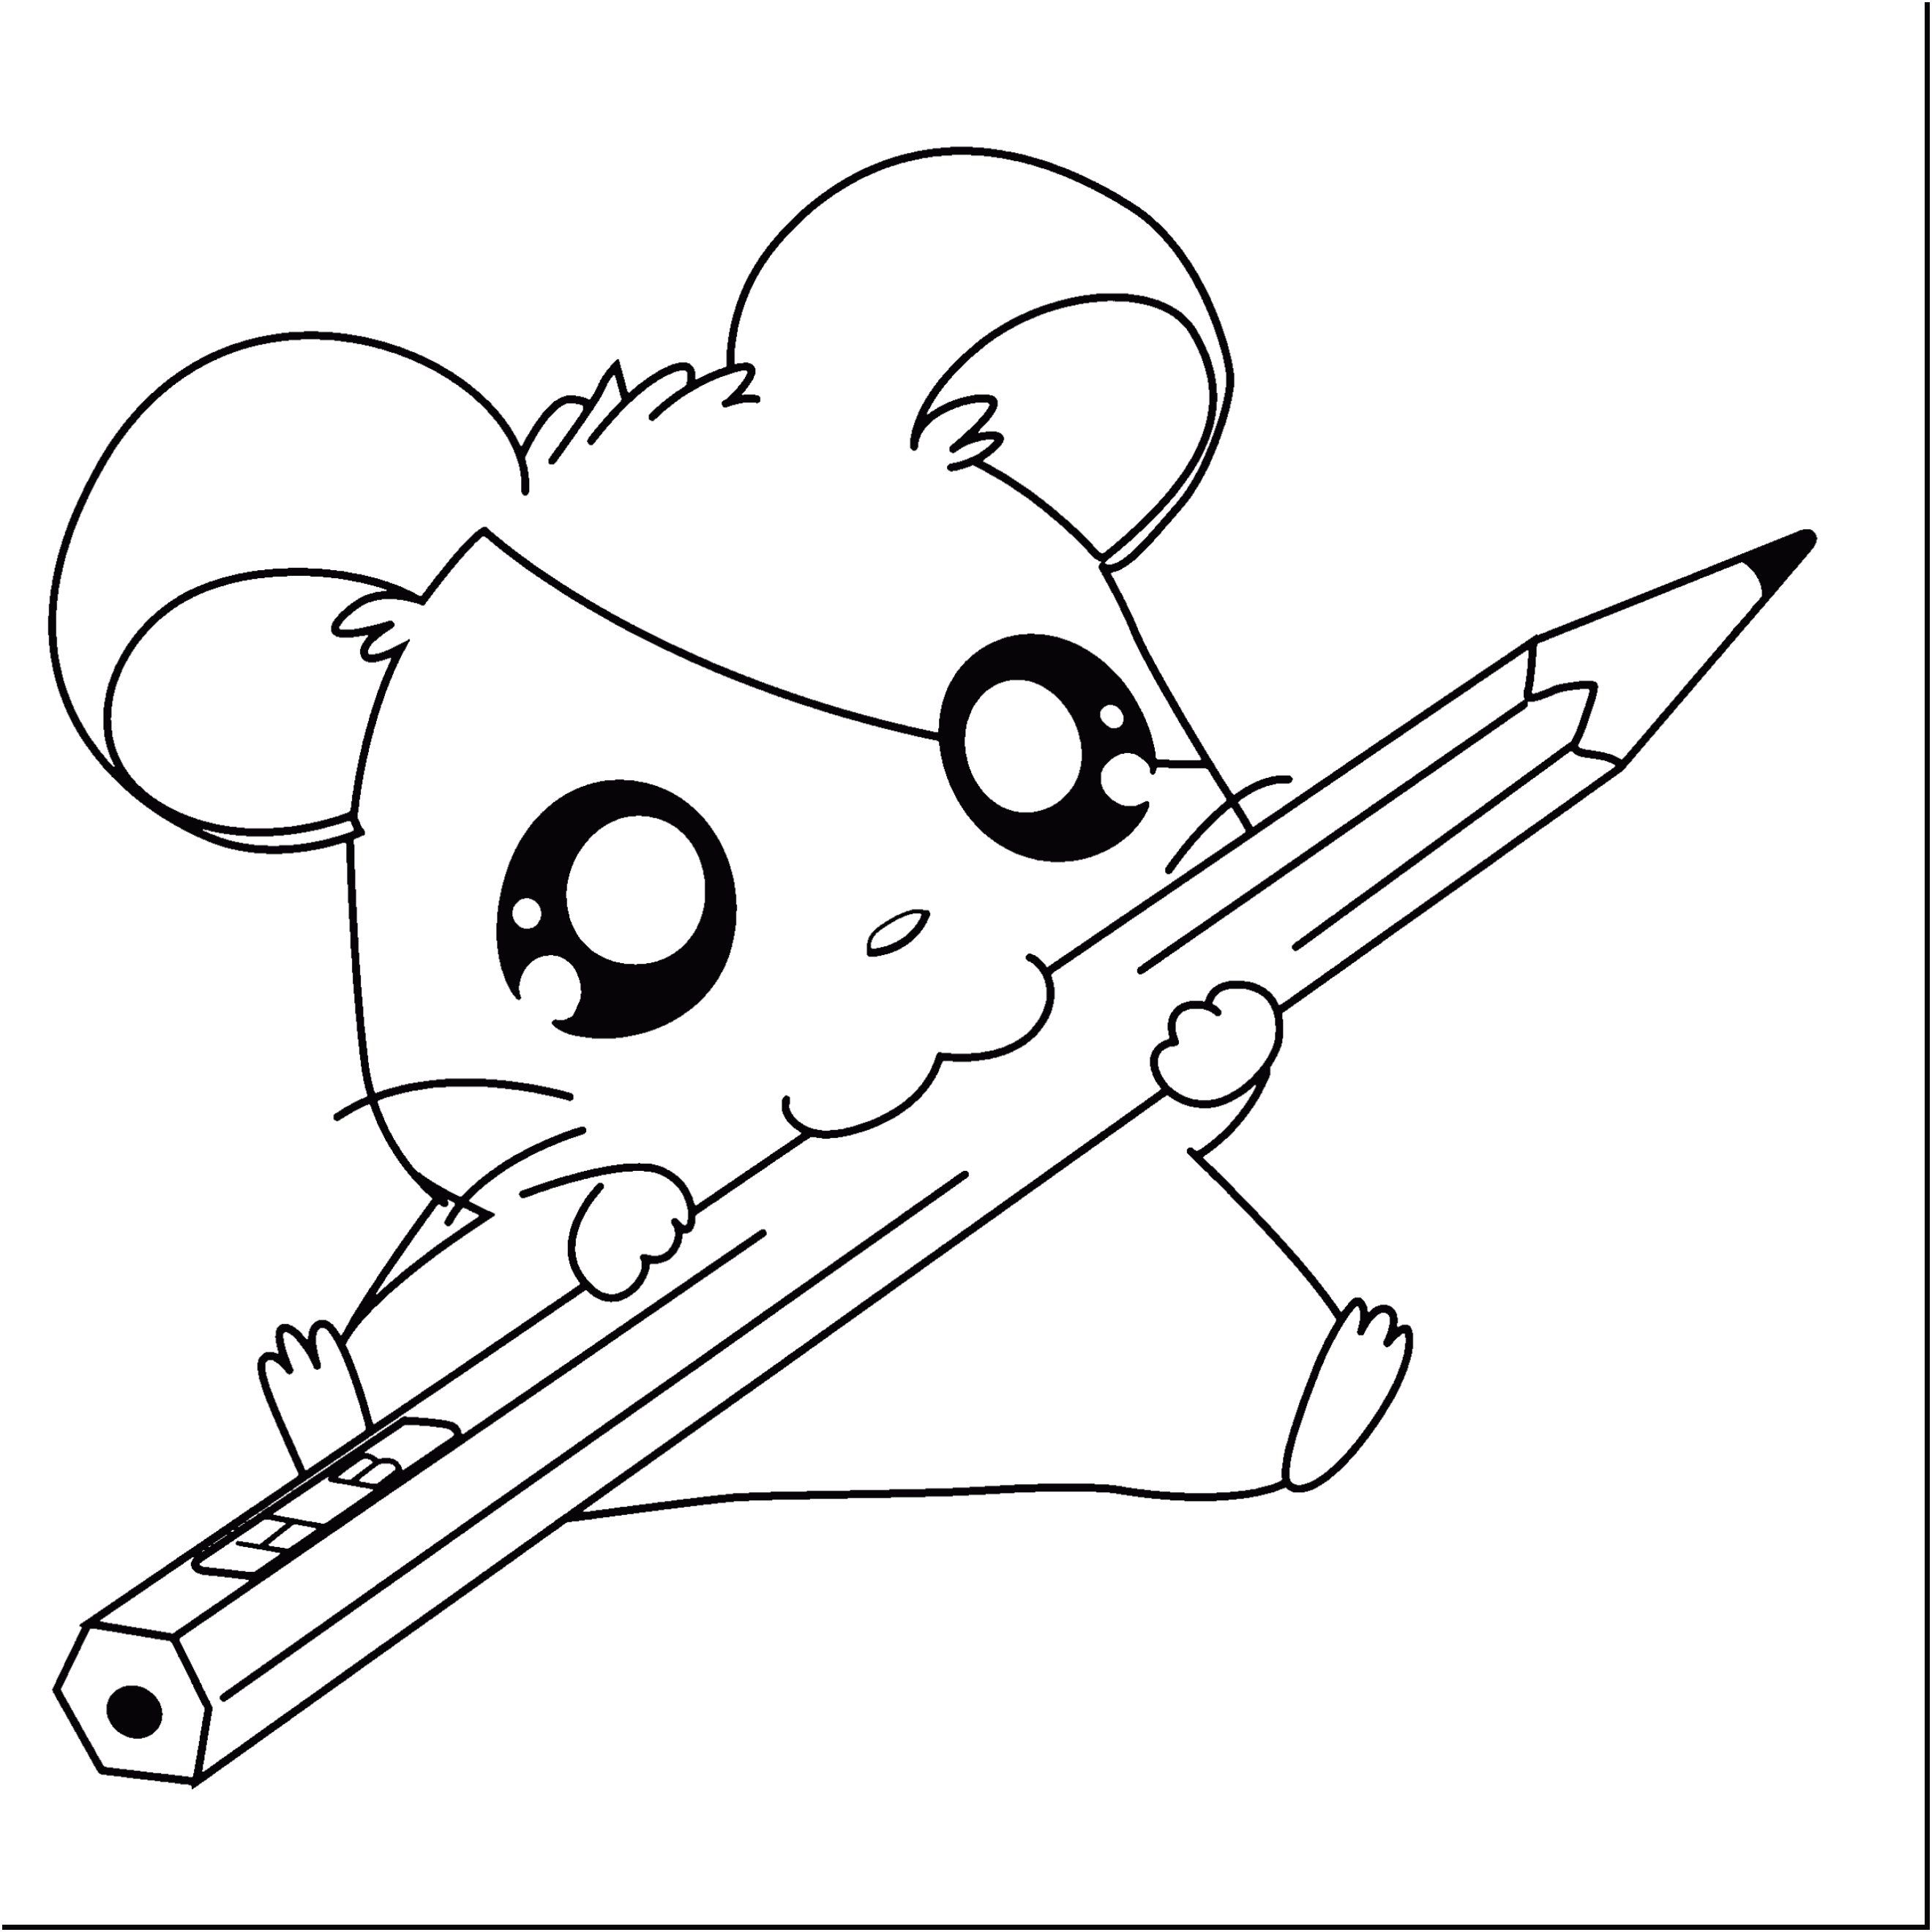 Image Result For Drawing Adorable Animals Step By Step With Images Puppy Coloring Pages Animal Coloring Books Cute Animal Drawings